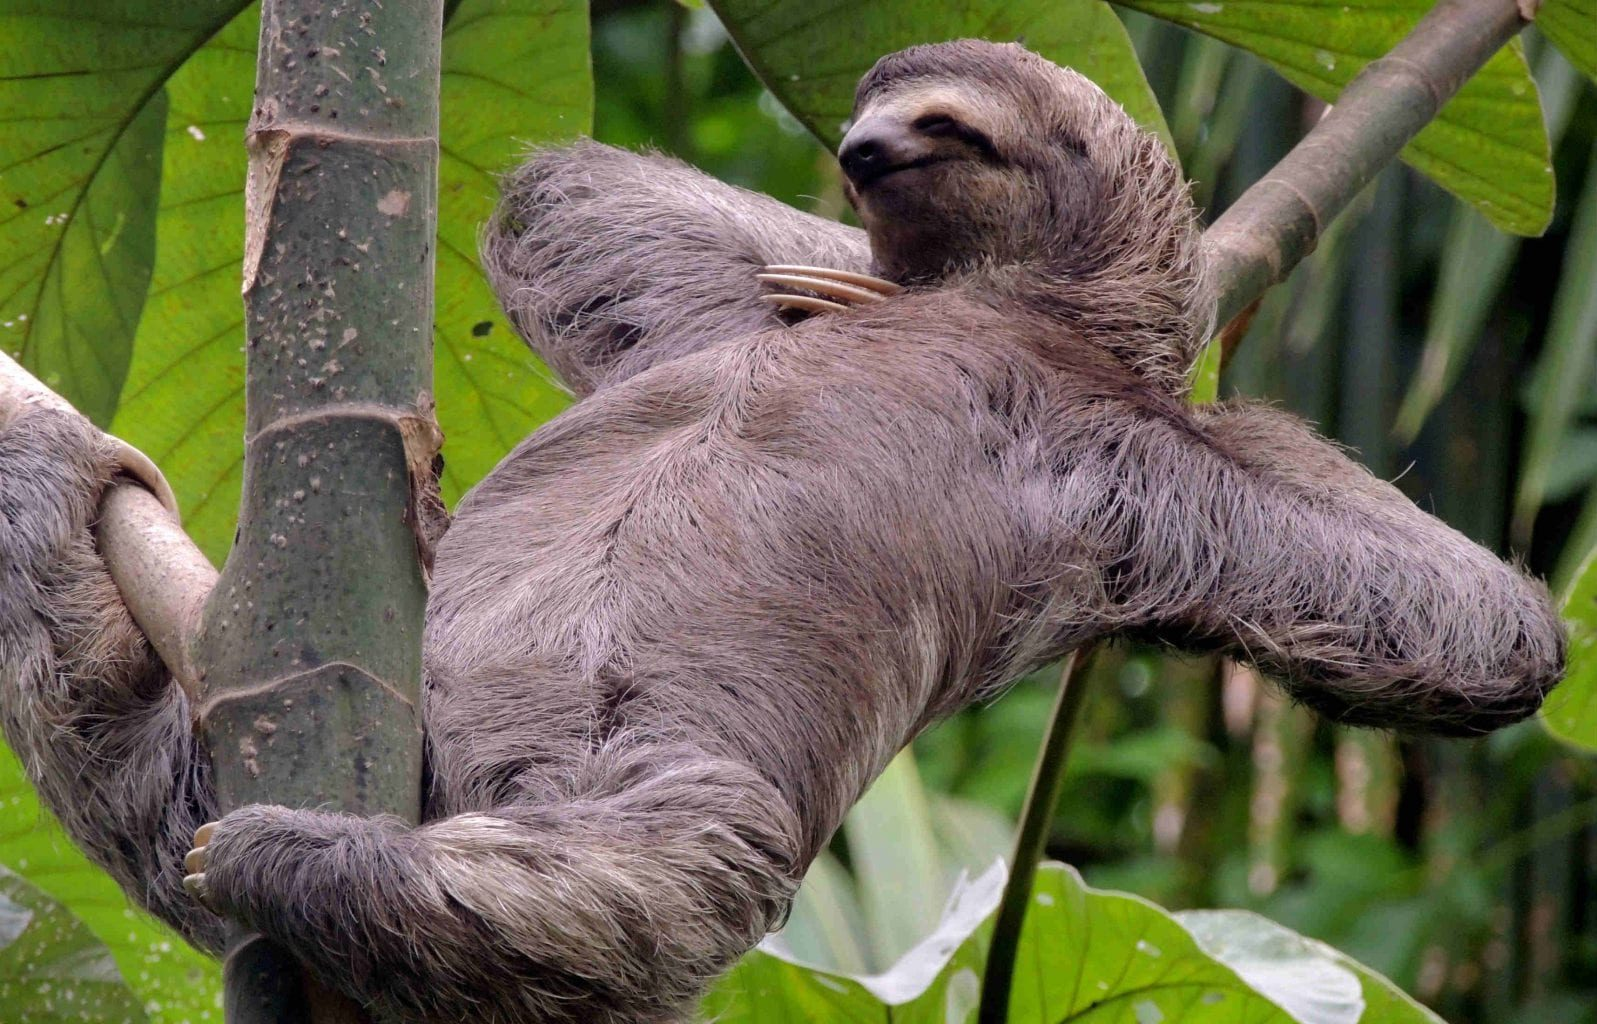 Sloth relaxing